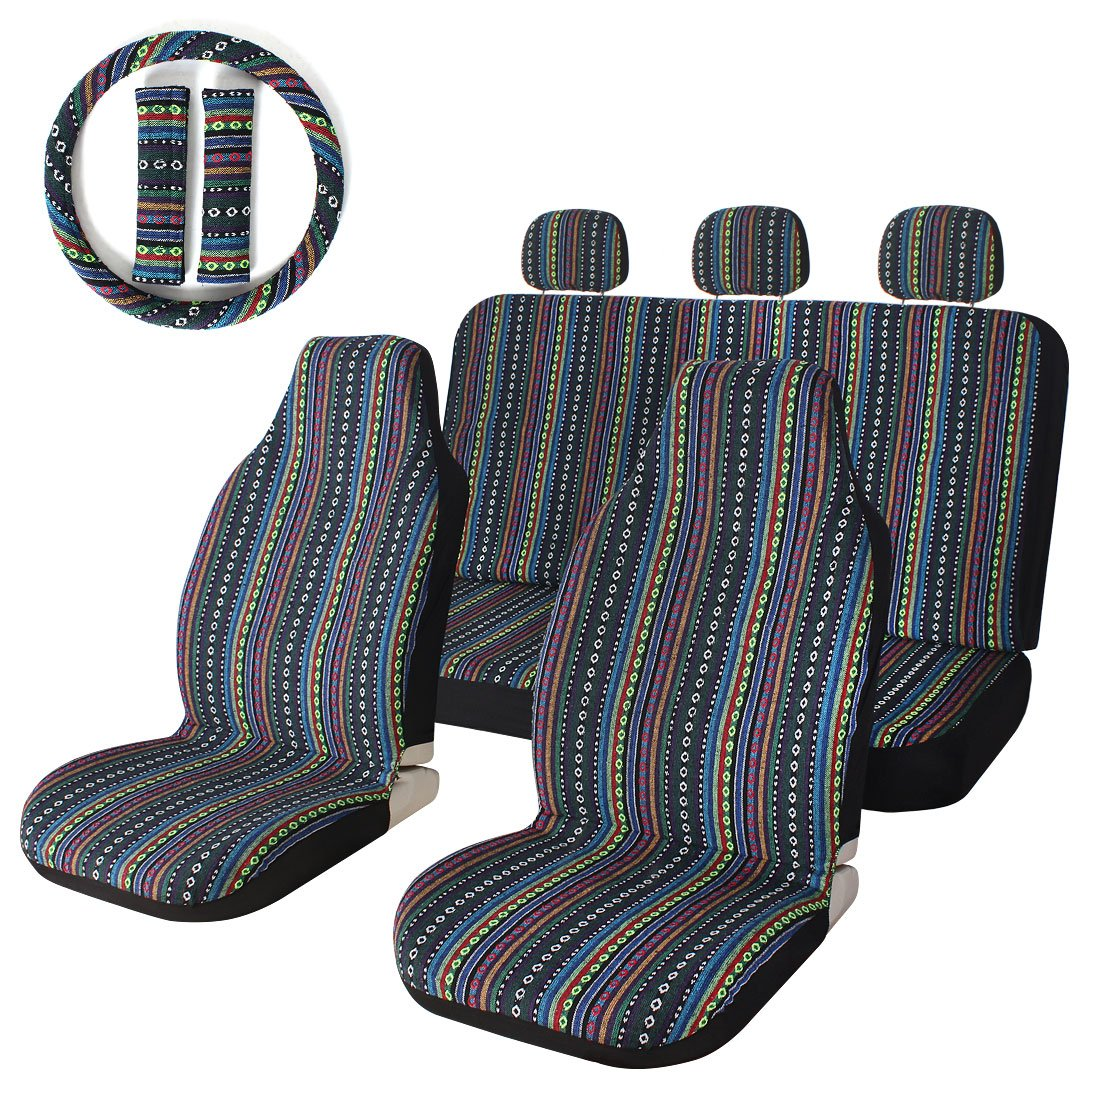 Car Seat Covers Indian Blanket Velcromag